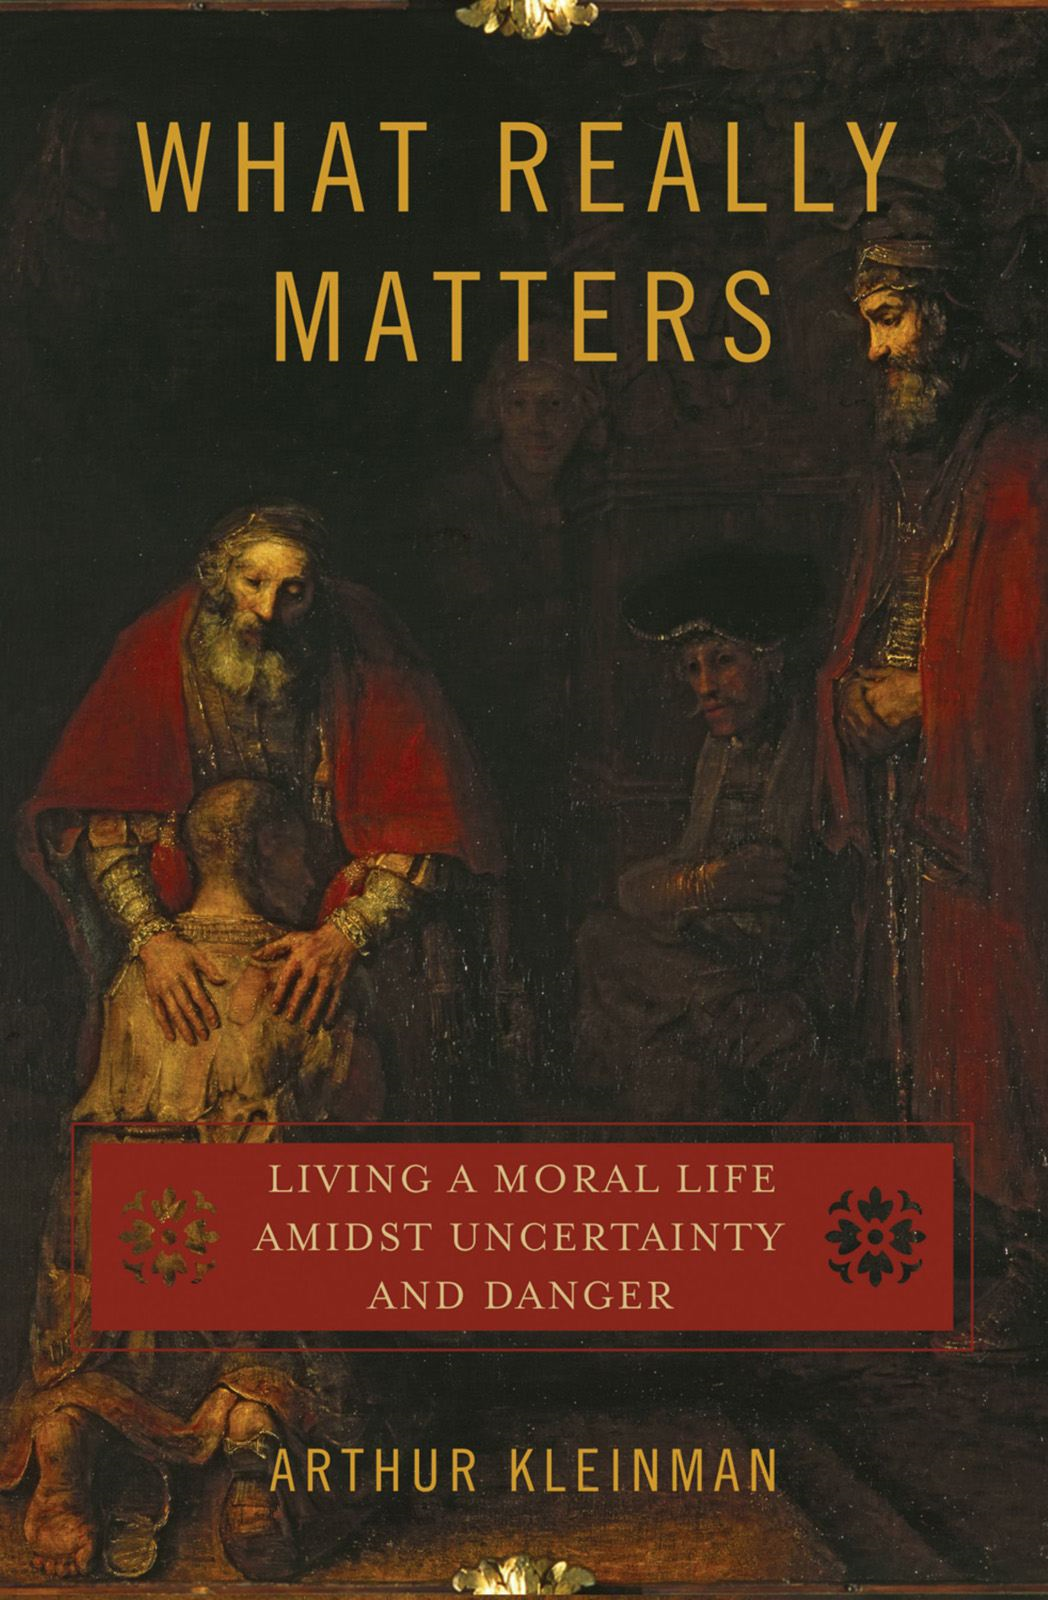 What Really Matters:Living a Moral Life amidst Uncertainty and Danger